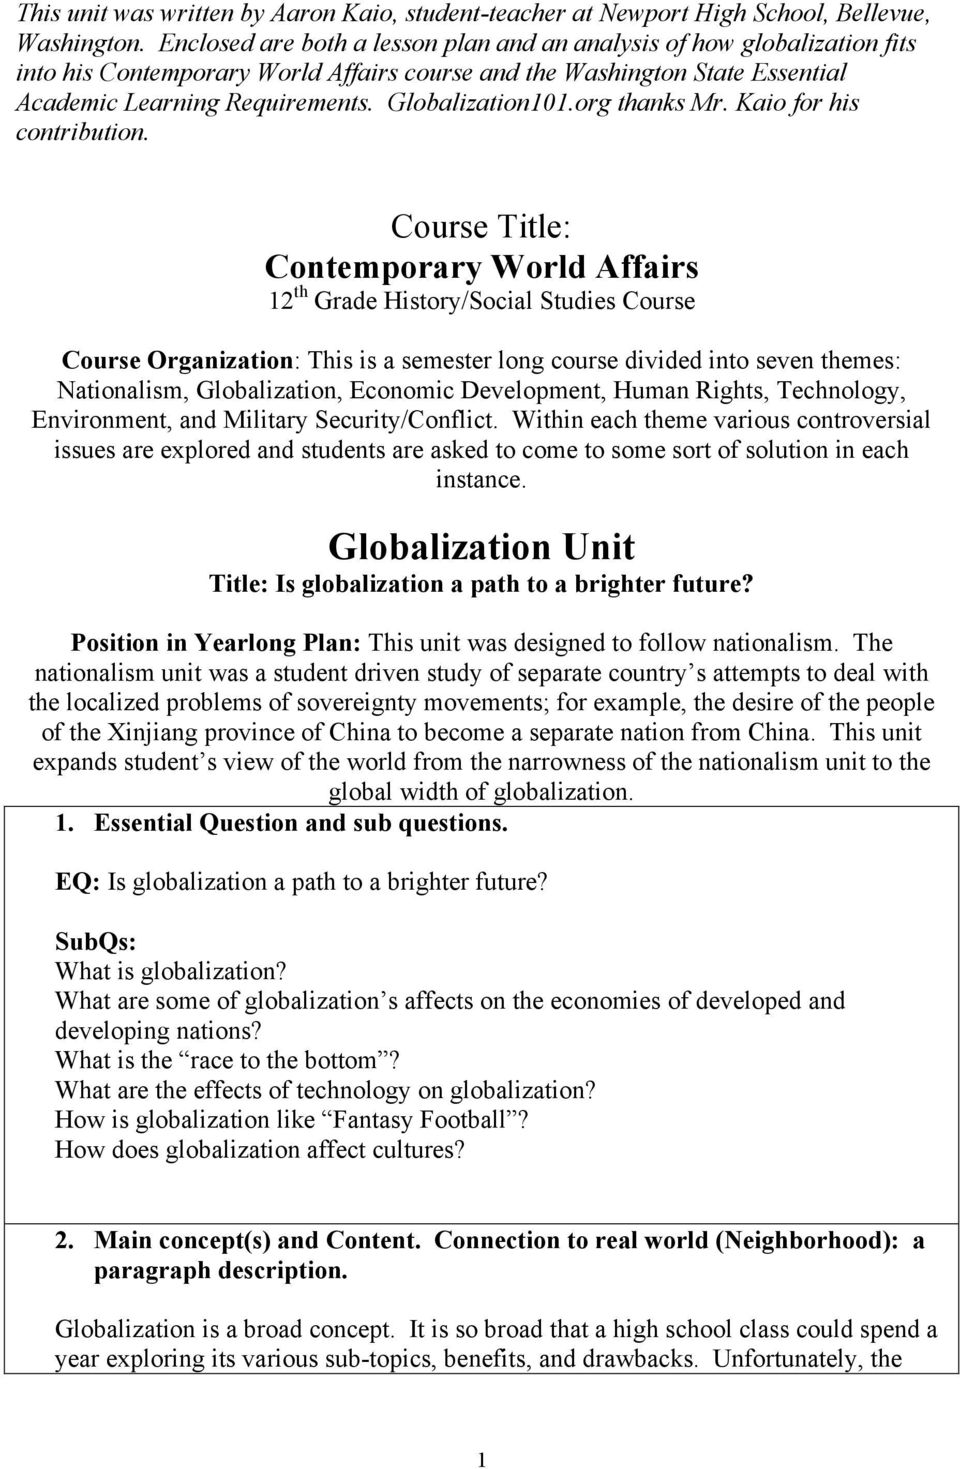 how does globalization affect culture